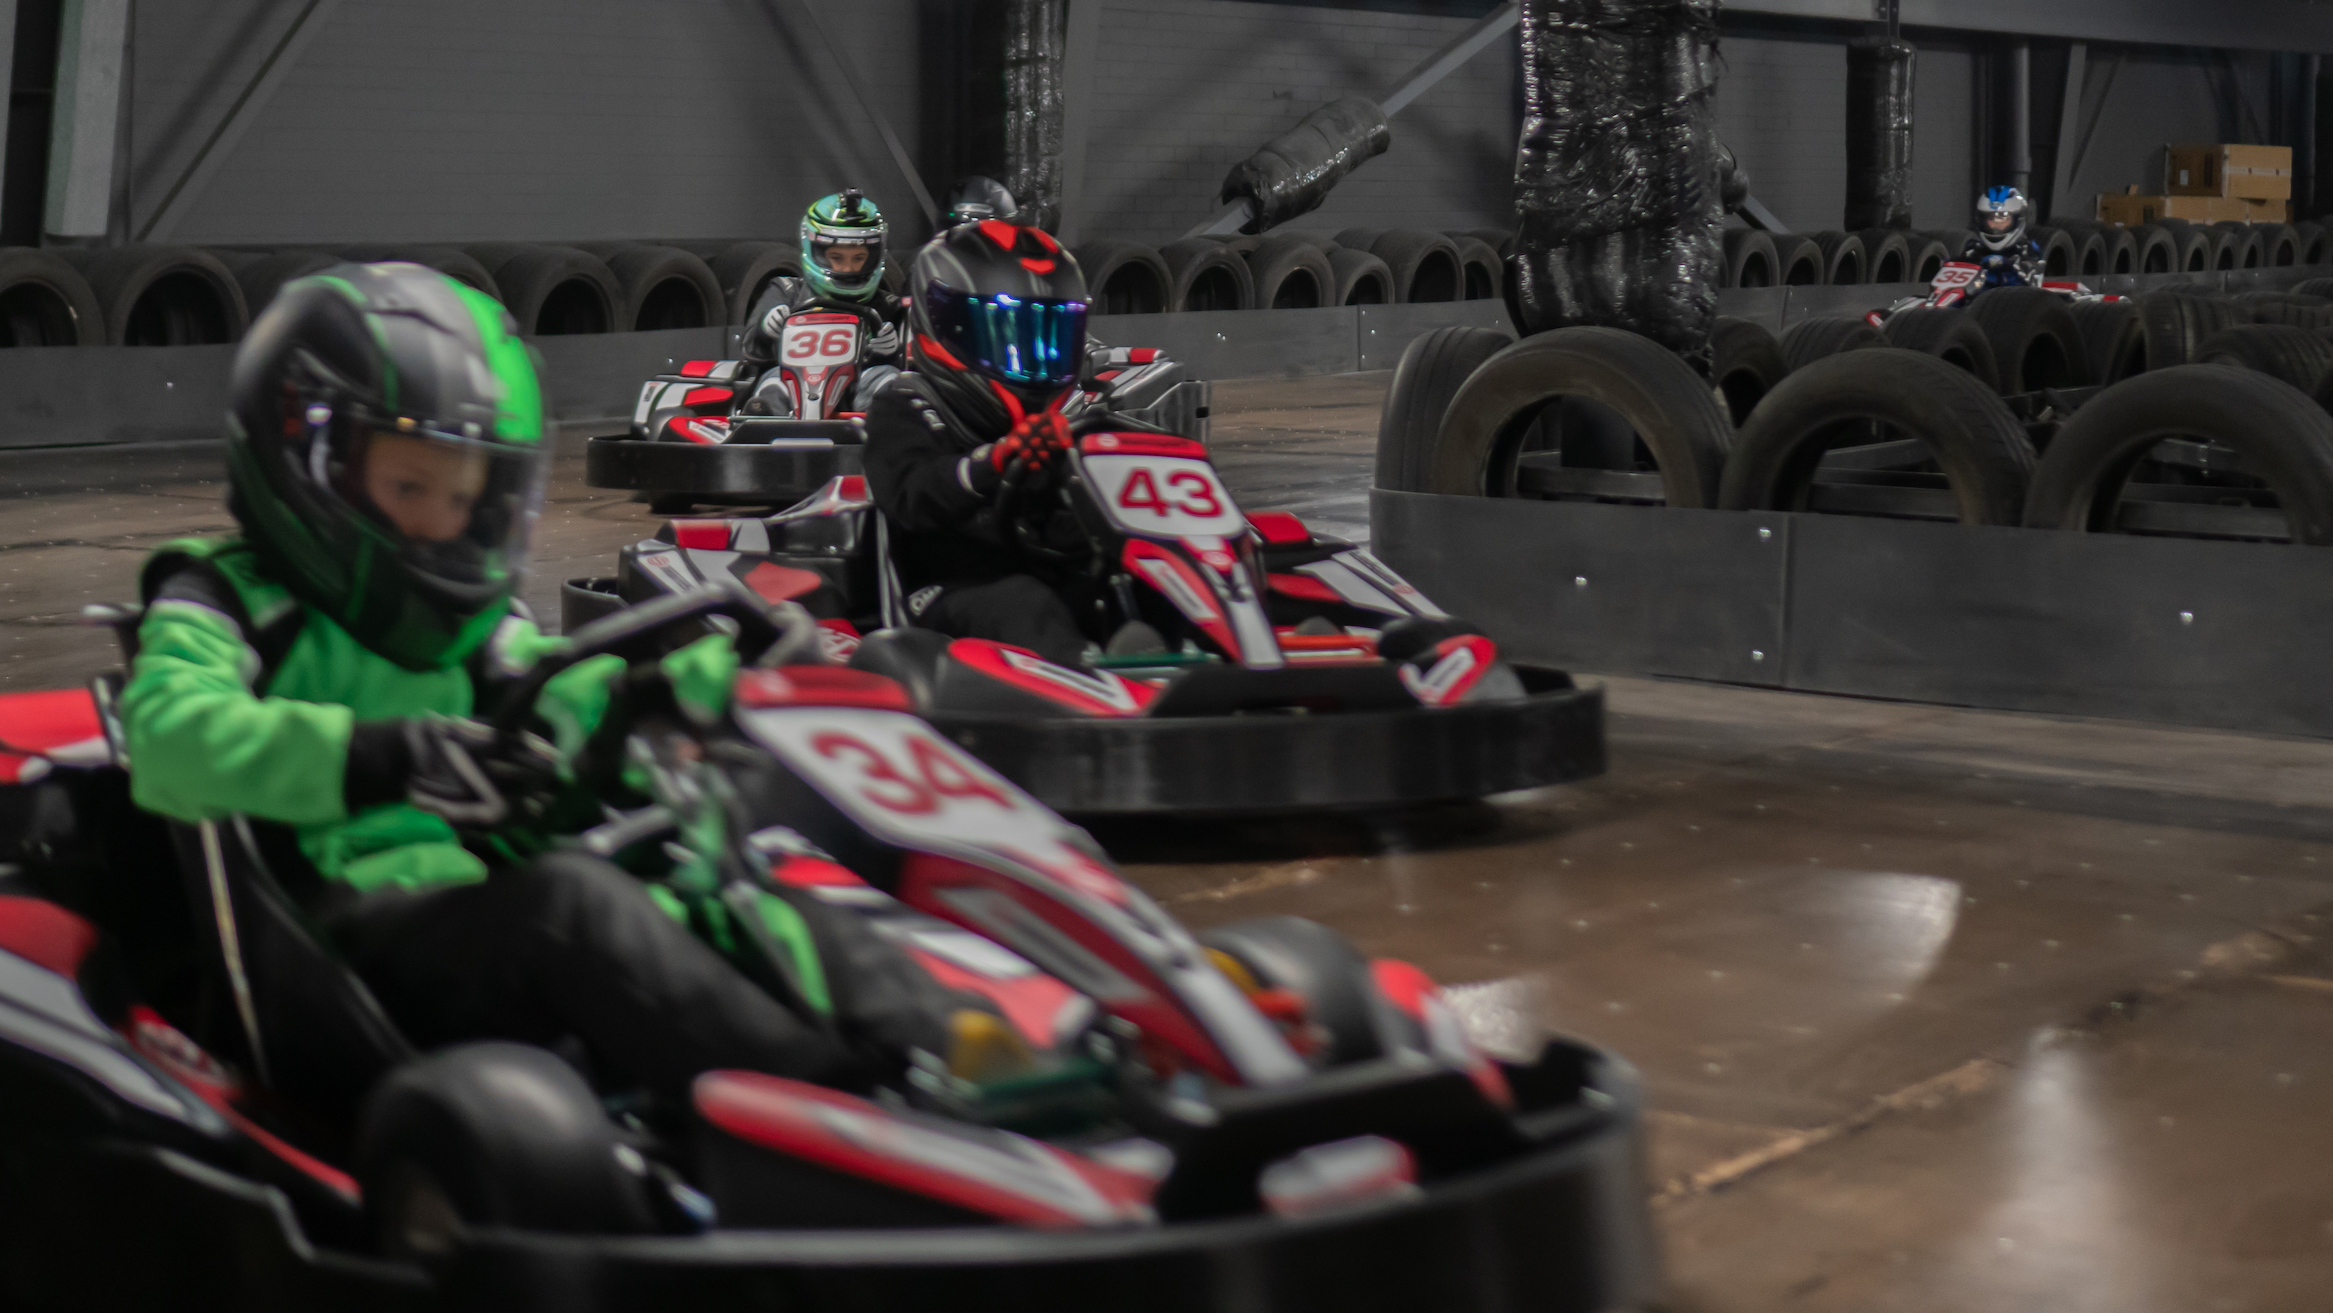 Watford gets set for indoor karting in Spring 2020